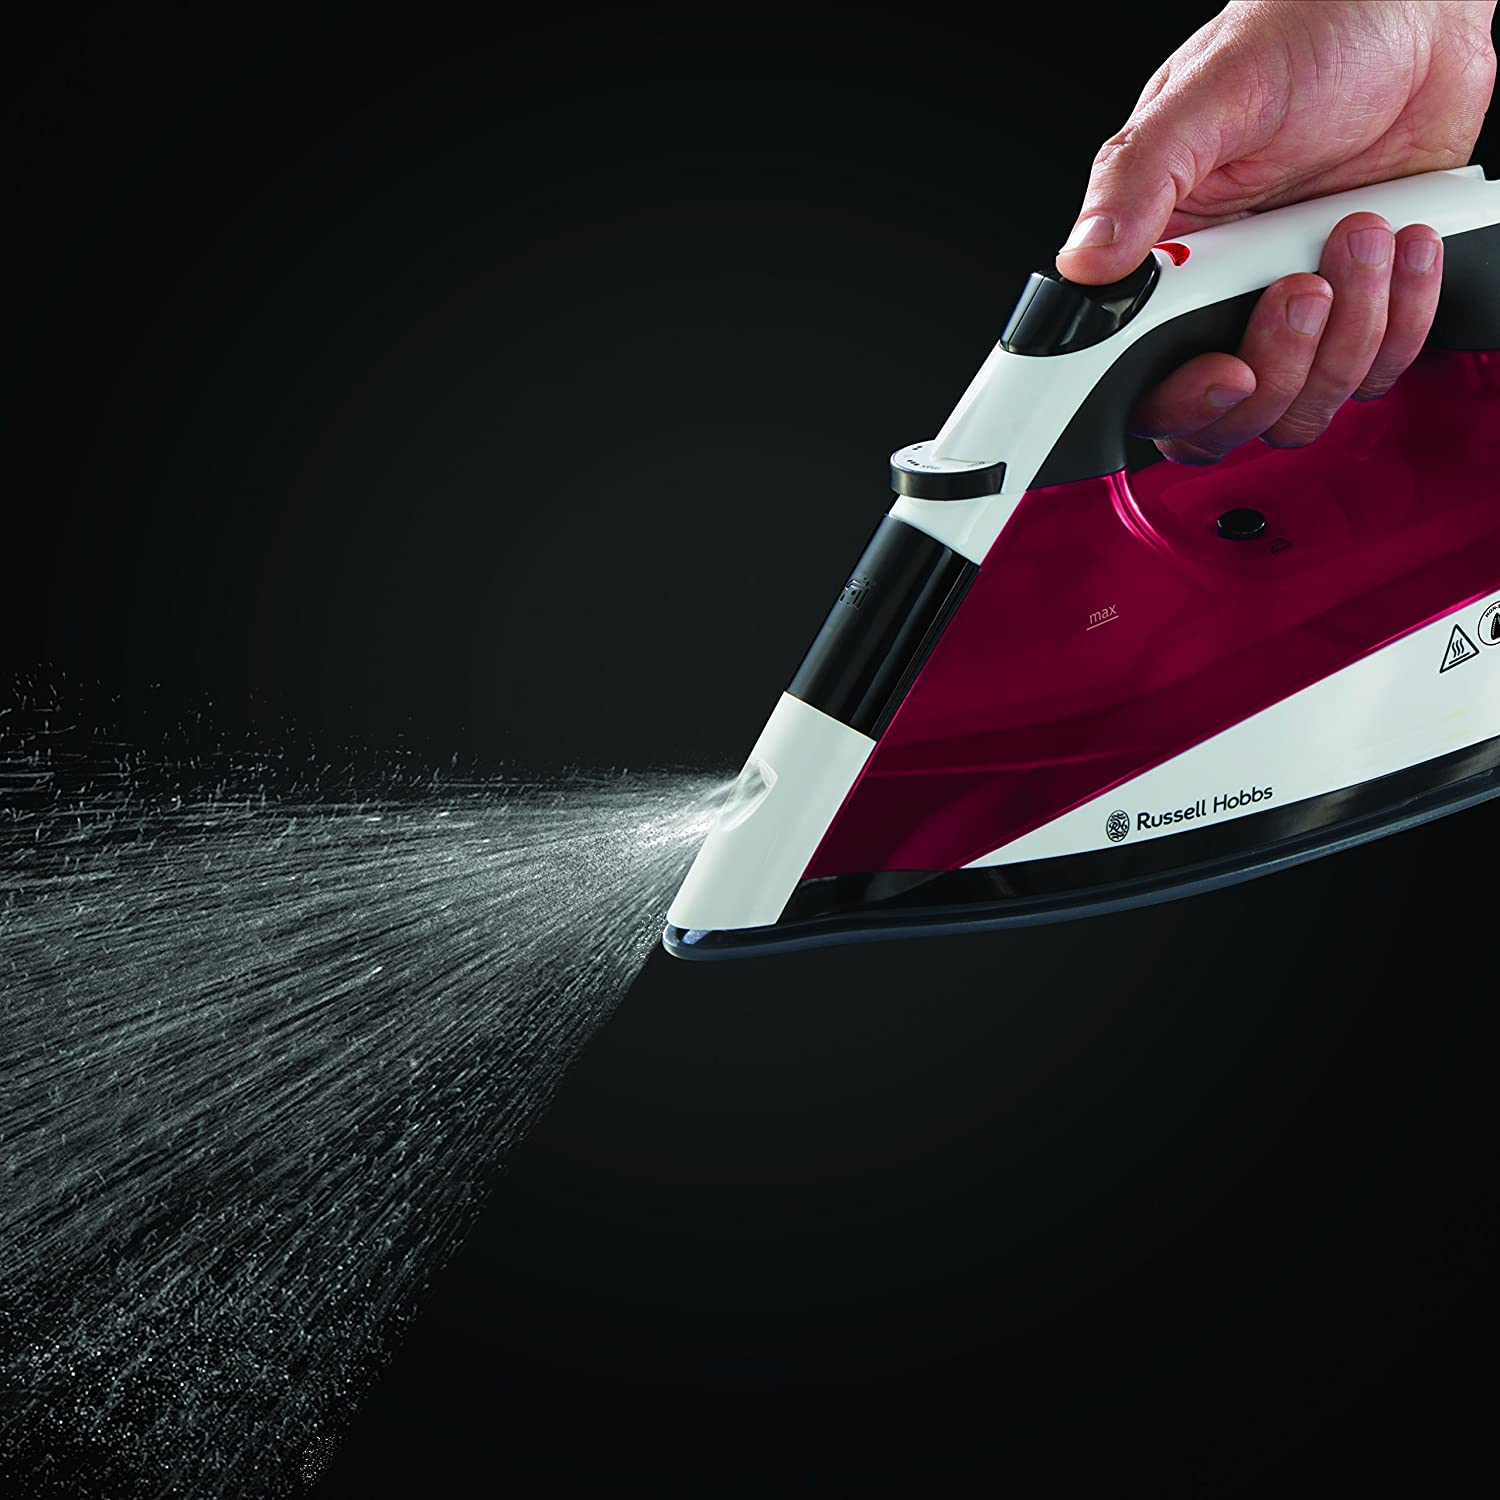 Buy Russell Hobbs Auto Steam Pro Non-Stick Iron 22520, 2400 W - White and  Red Online at Low Prices in India - Amazon.in